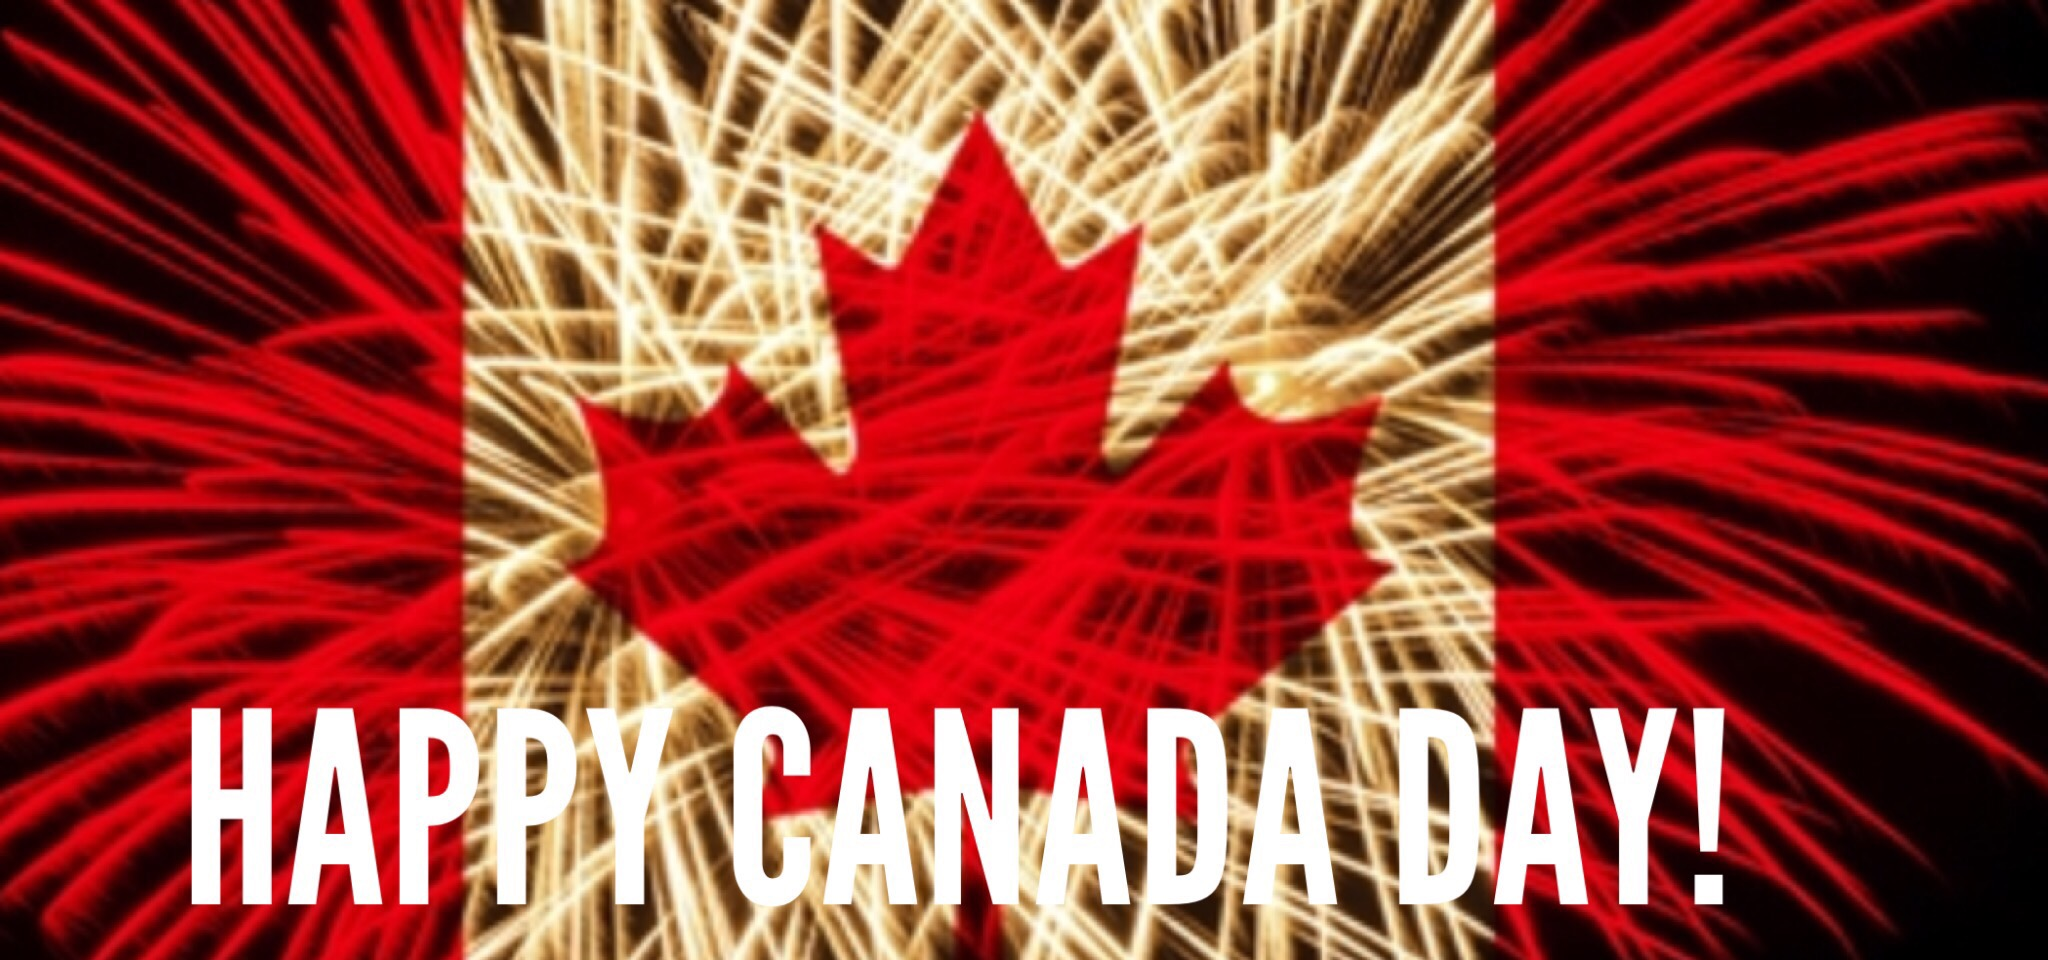 Canada Day - Canada Flag Faded Over Fire Works Burst